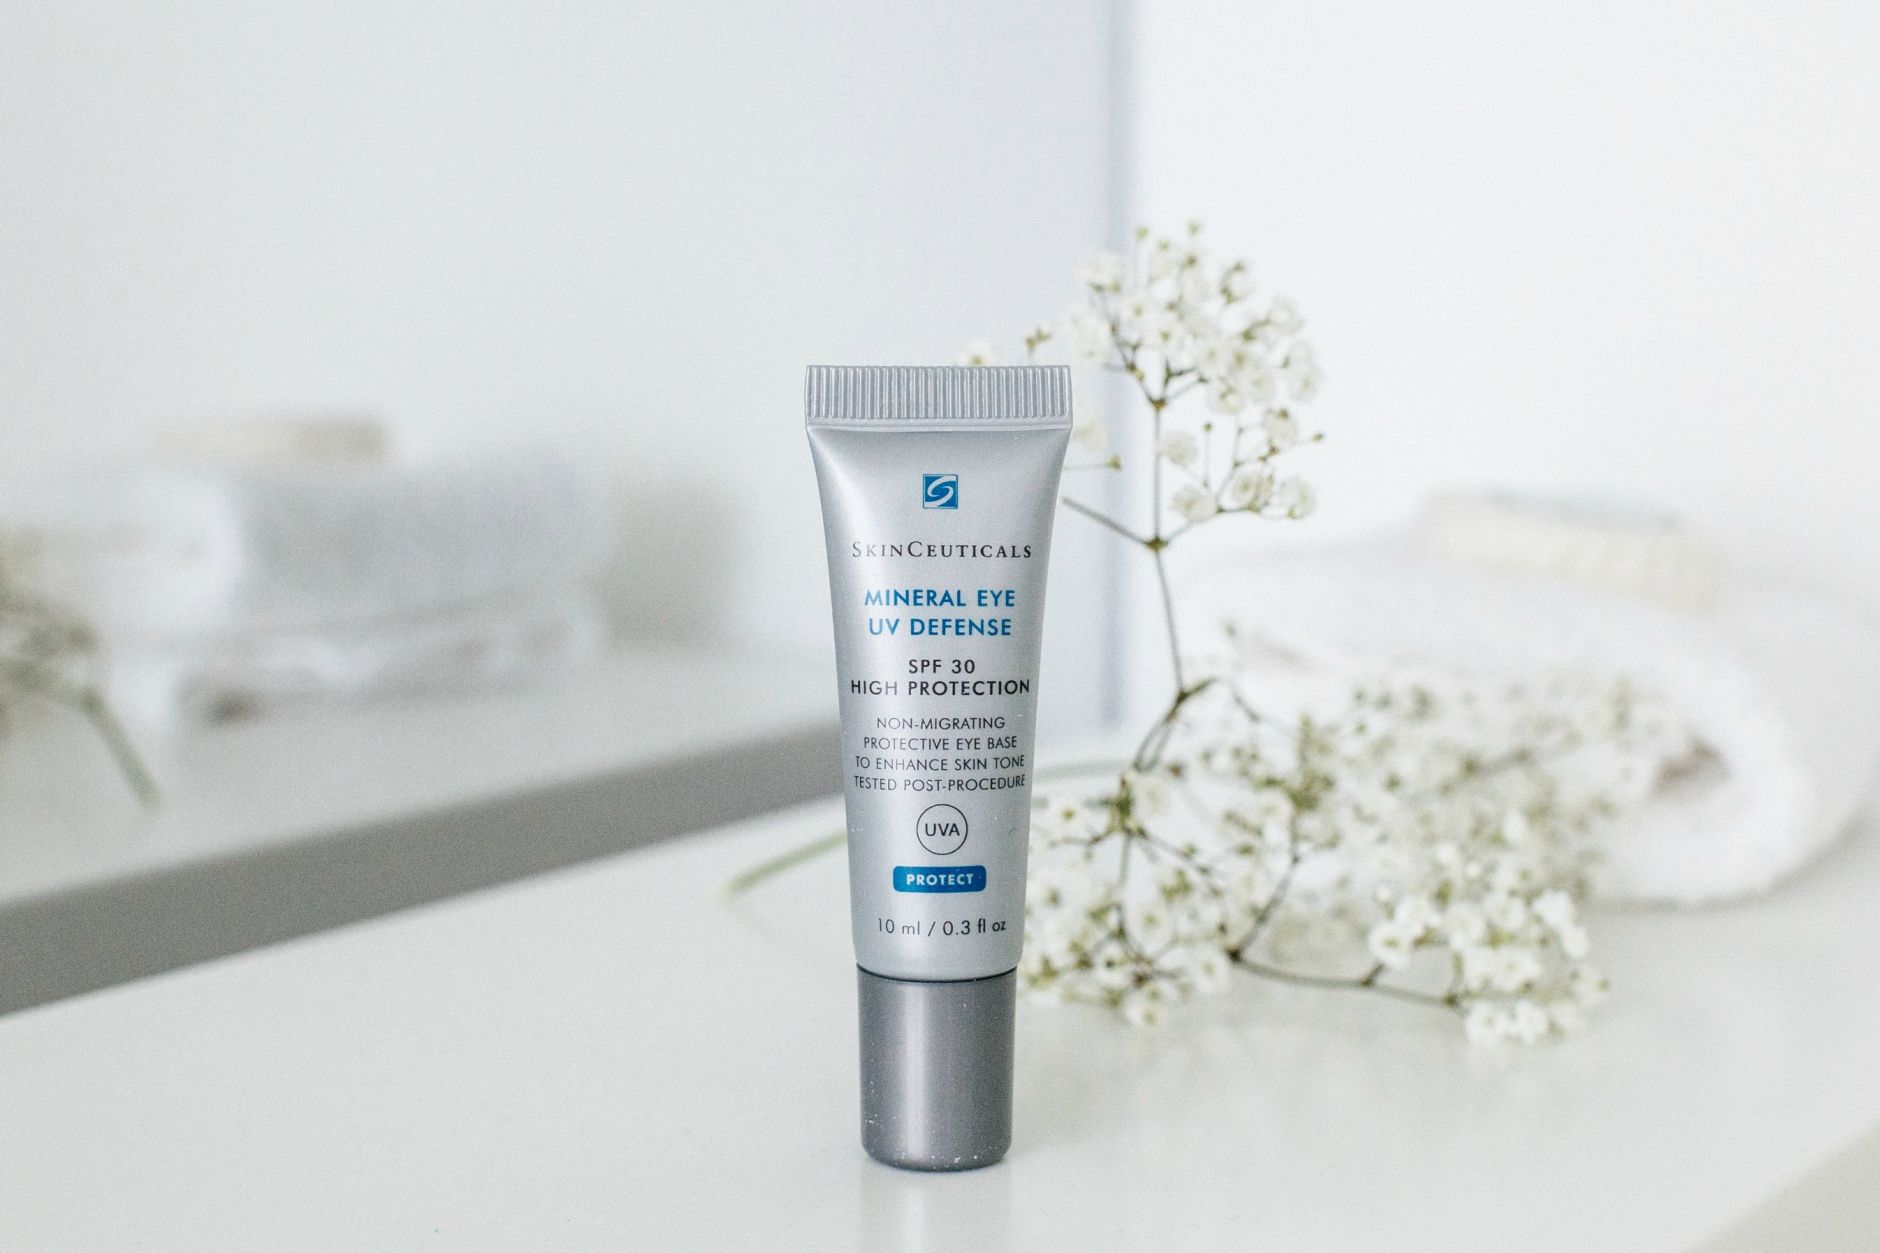 SkinCeuticals-Mineral-Eye-UV-Devense-SPF-30-High-Protection-Disi-Couture